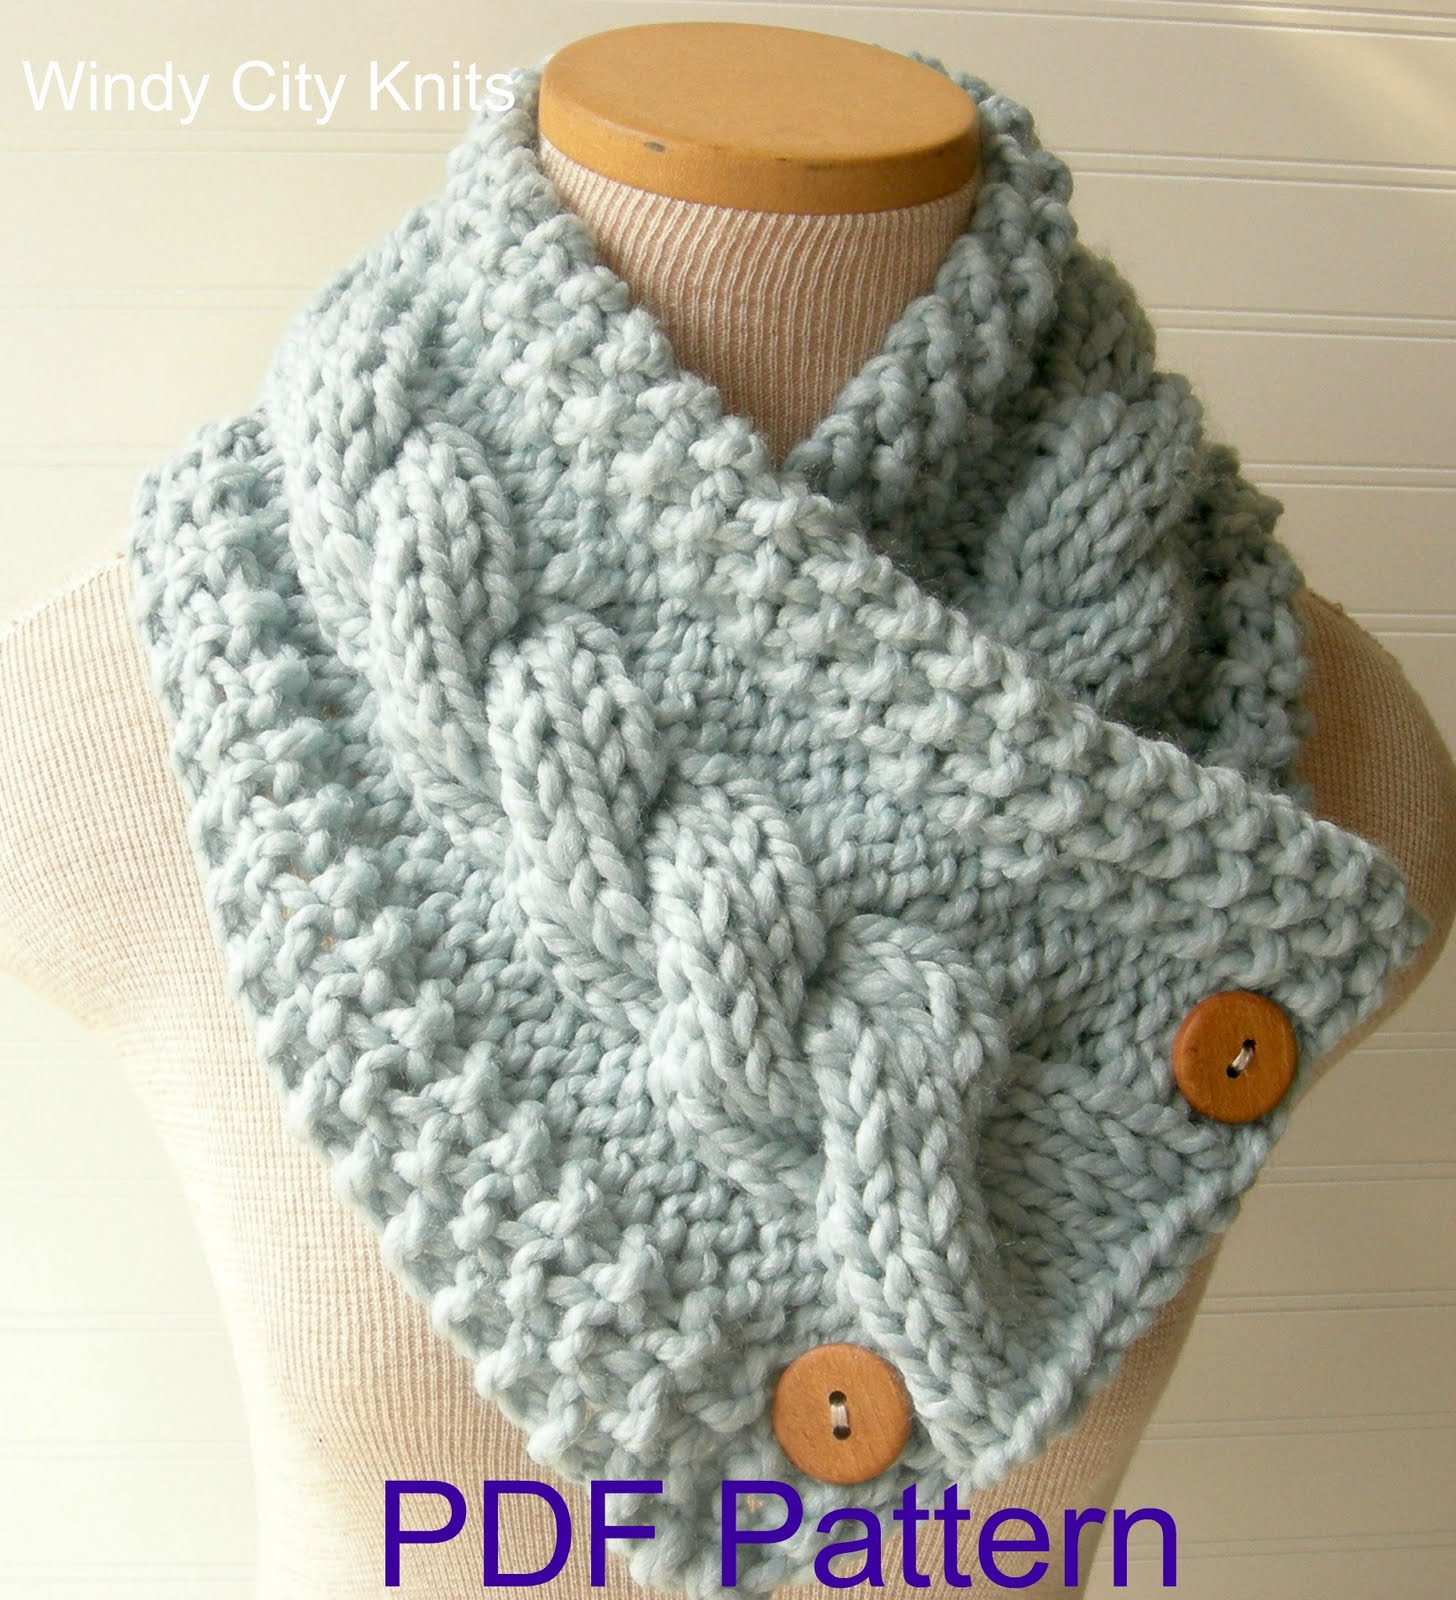 Cabled Cowl Knitting Pattern : WindyCityKnits: Knit Cable Cowl Scarf Pattern Pdf